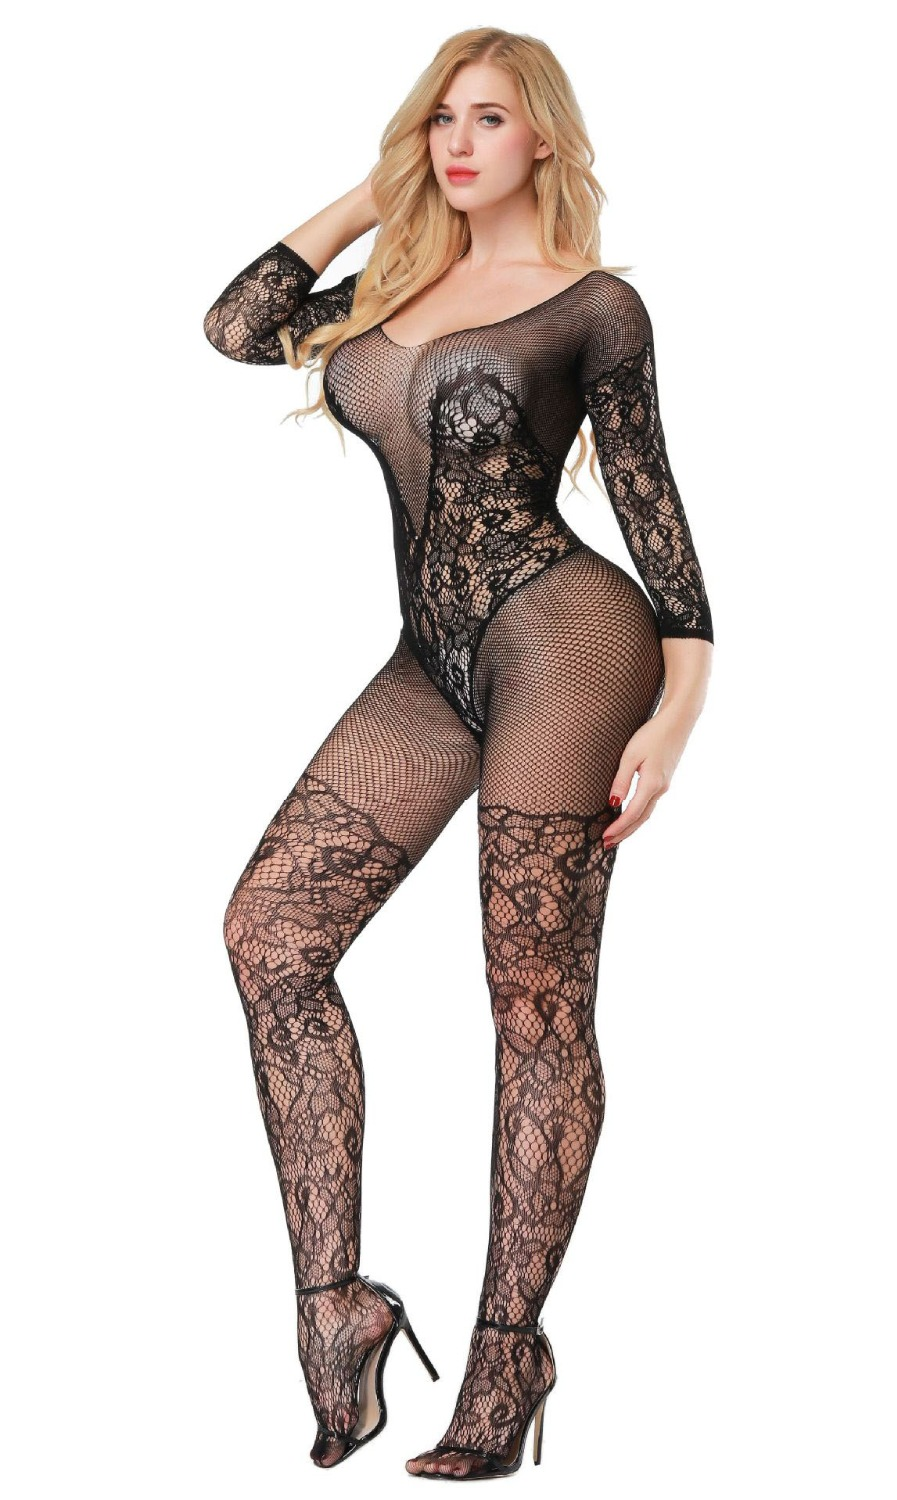 Sleepwear pantyhose as